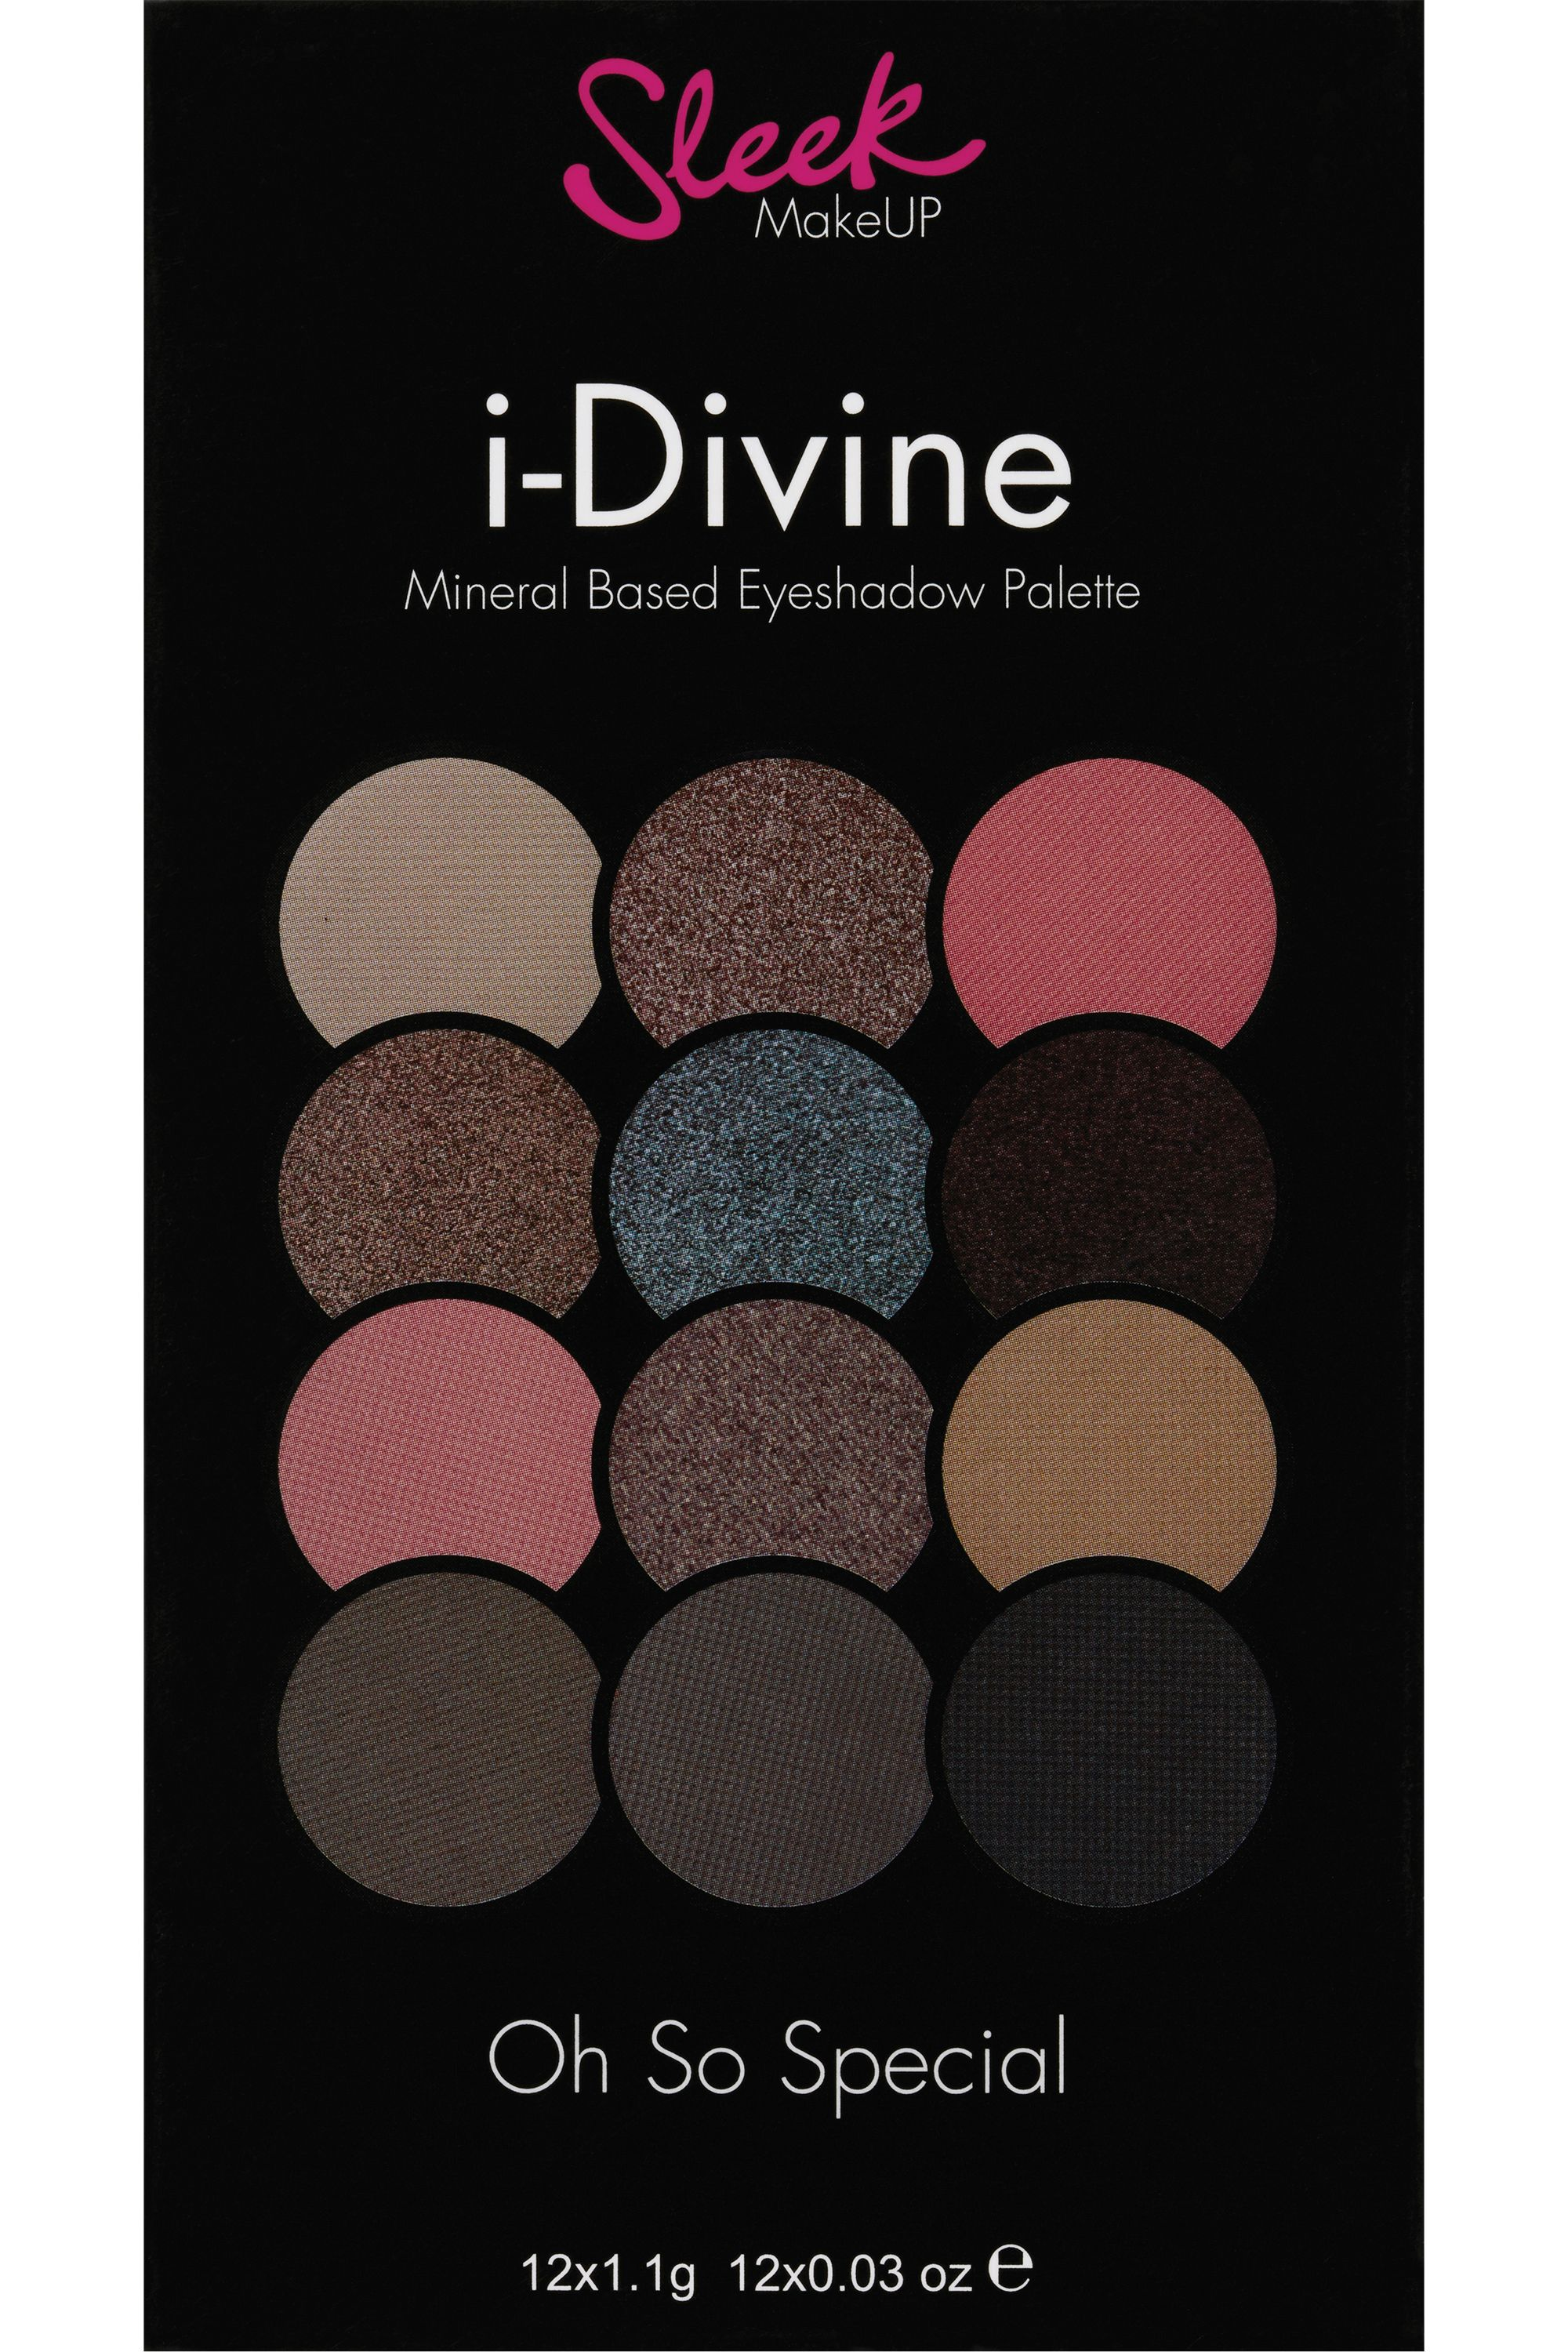 Blissim : Sleek MakeUP - Palette de fards à paupières i-Divine - Oh So Special